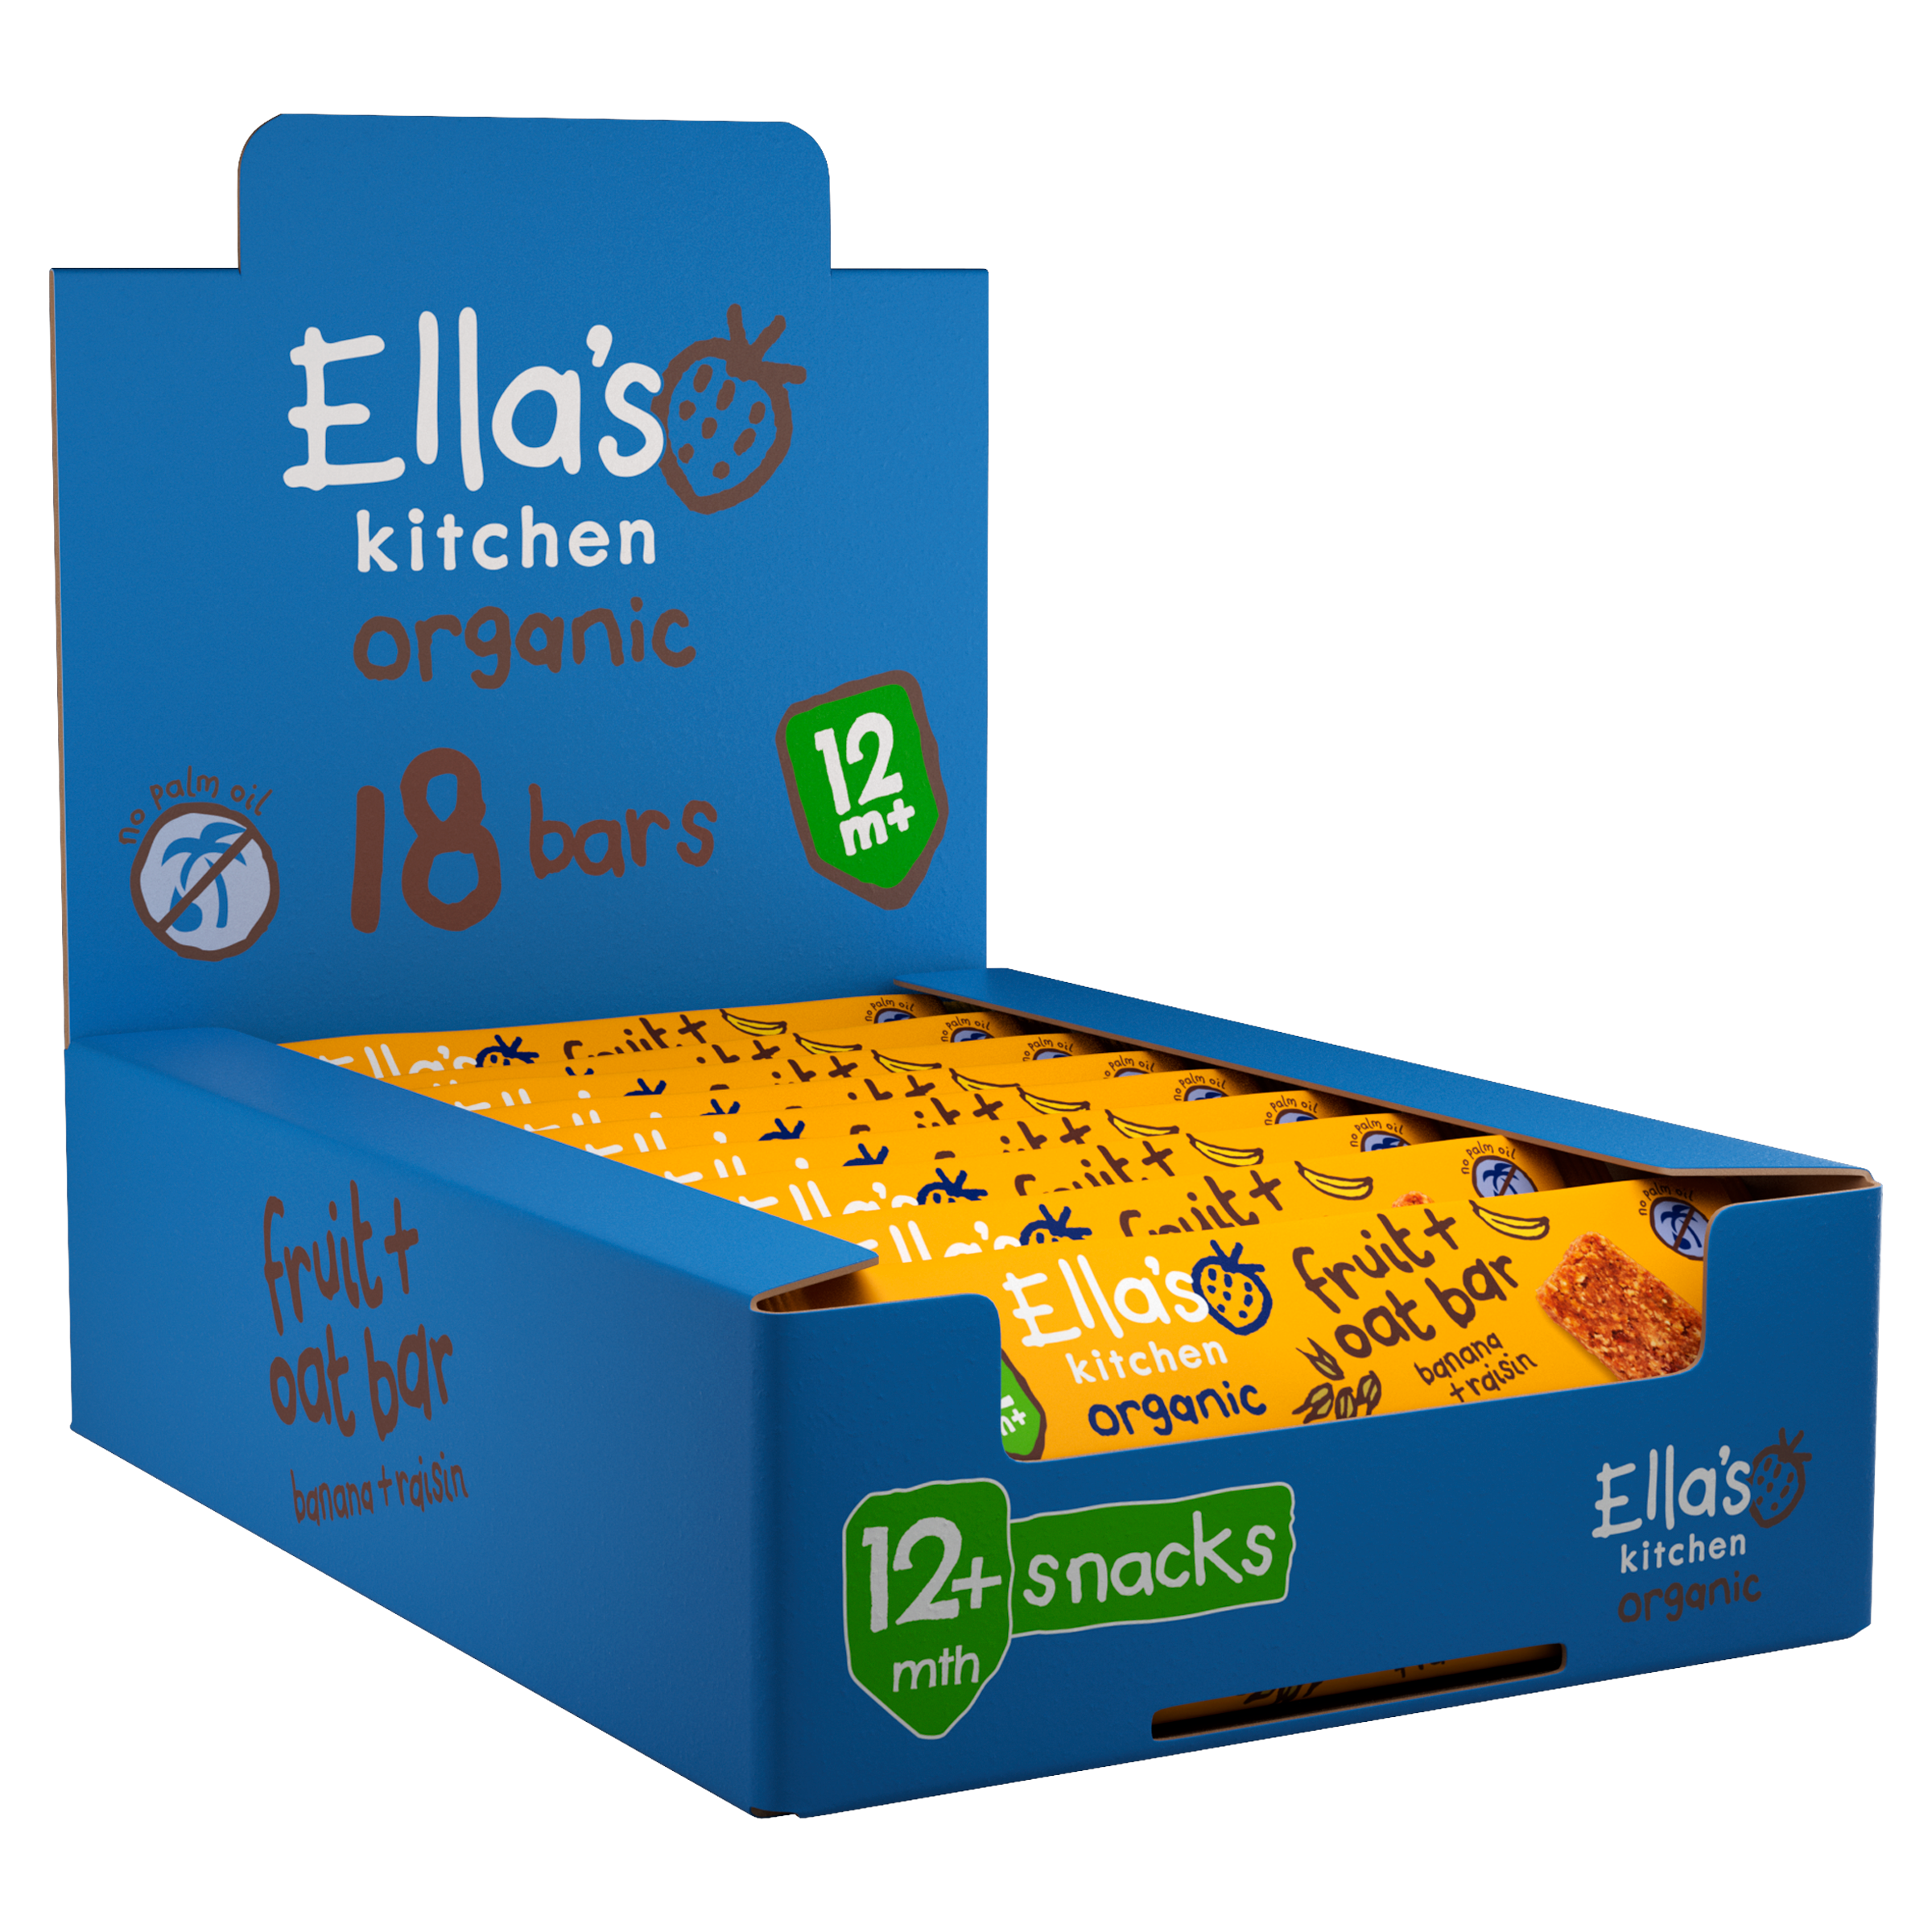 Ellas kitchen fruit oat product from 12 months front of pack bulk